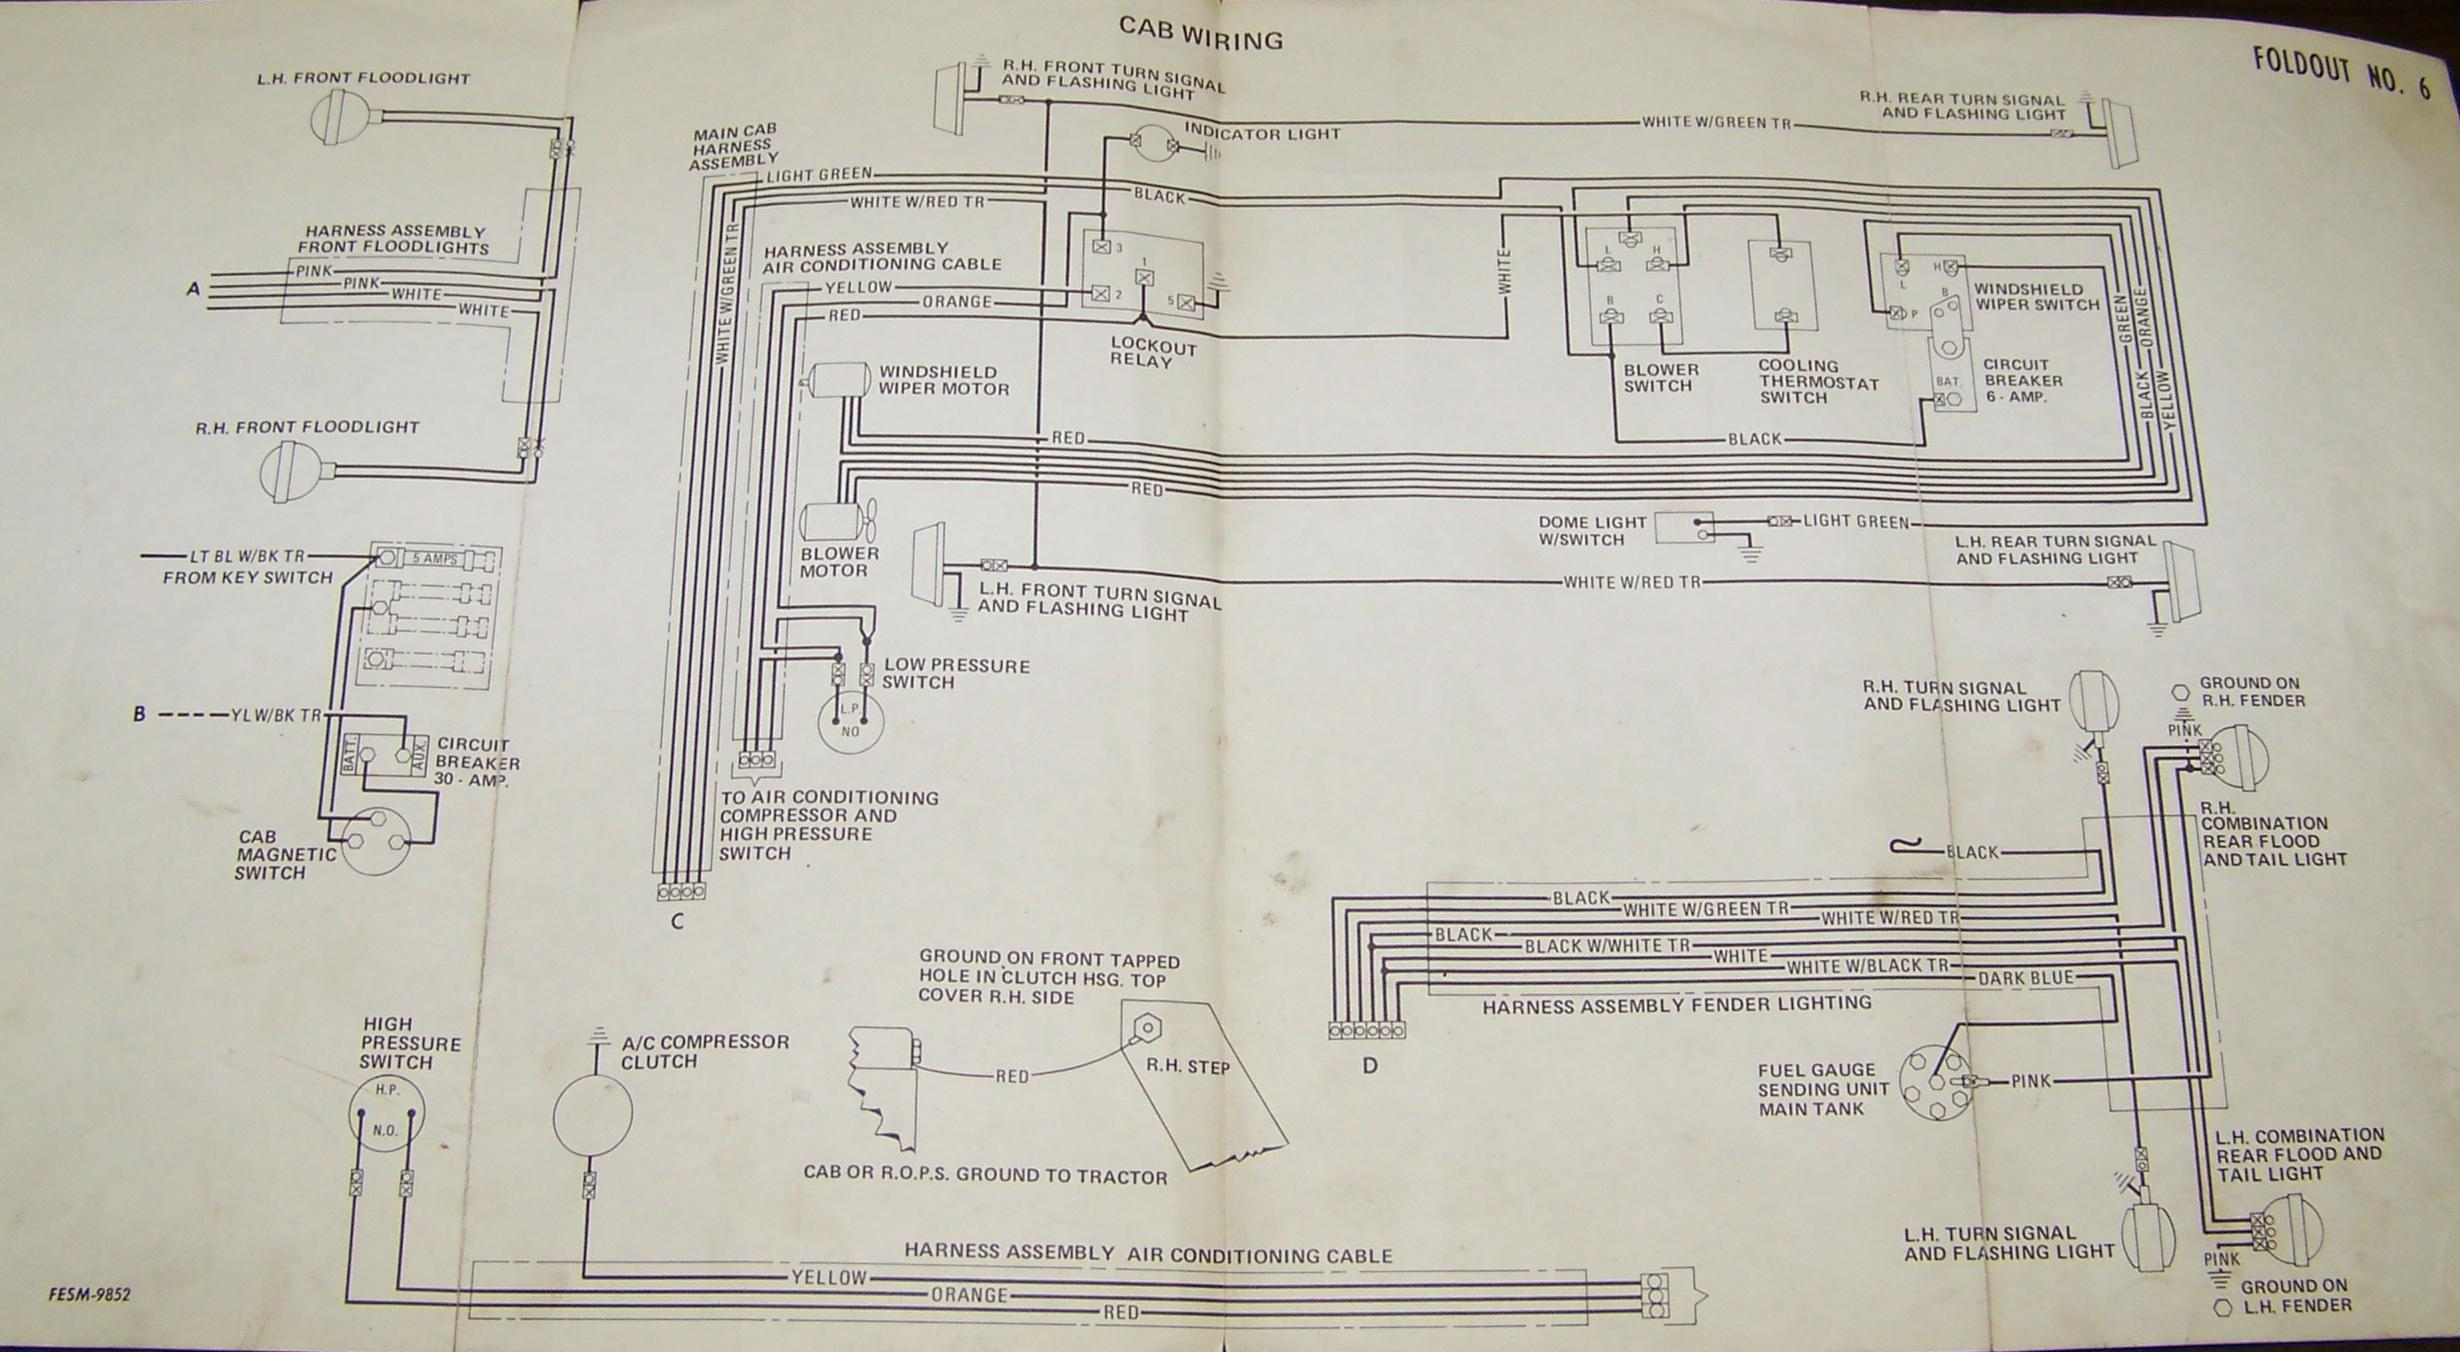 86series6 carter & gruenewald co inc ih farmall tractor electrical international wiring diagram at bayanpartner.co